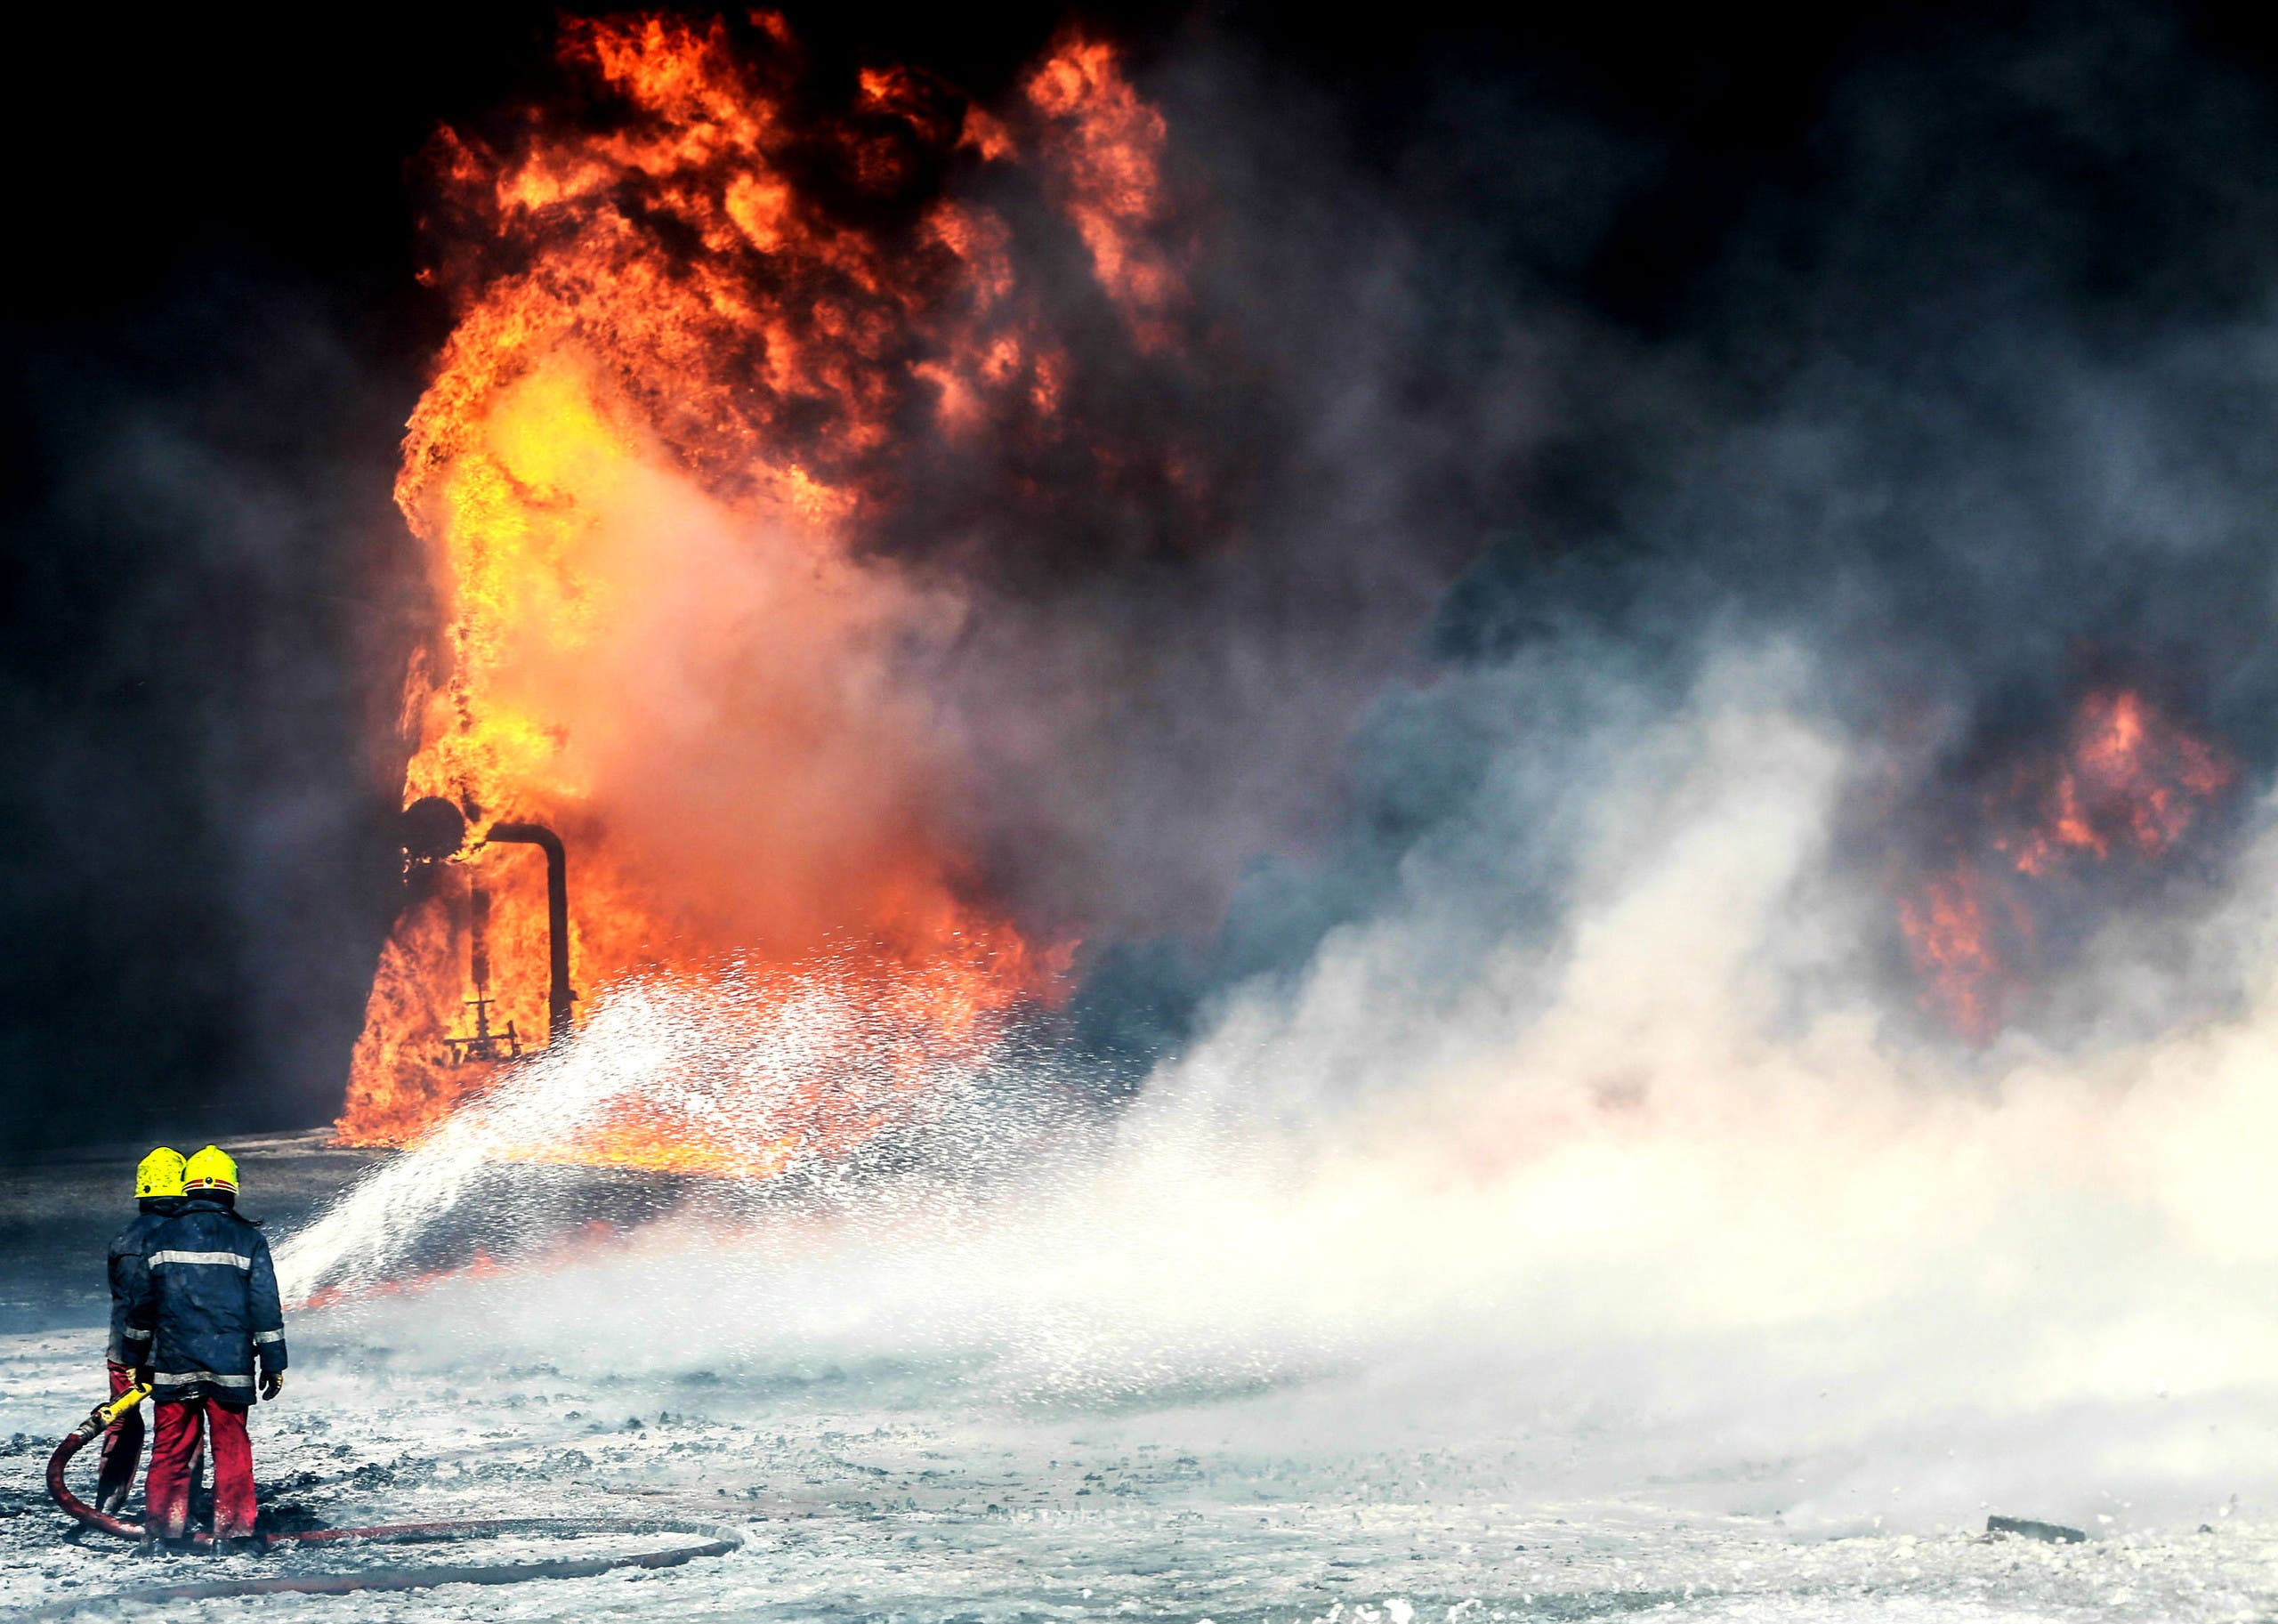 Firefighters try to put out the fire in an oil tank in the port of Es Sider, in Ras Lanuf, Libya, believed to be caused by ISIS -  January 6, 2016. (Reuters)